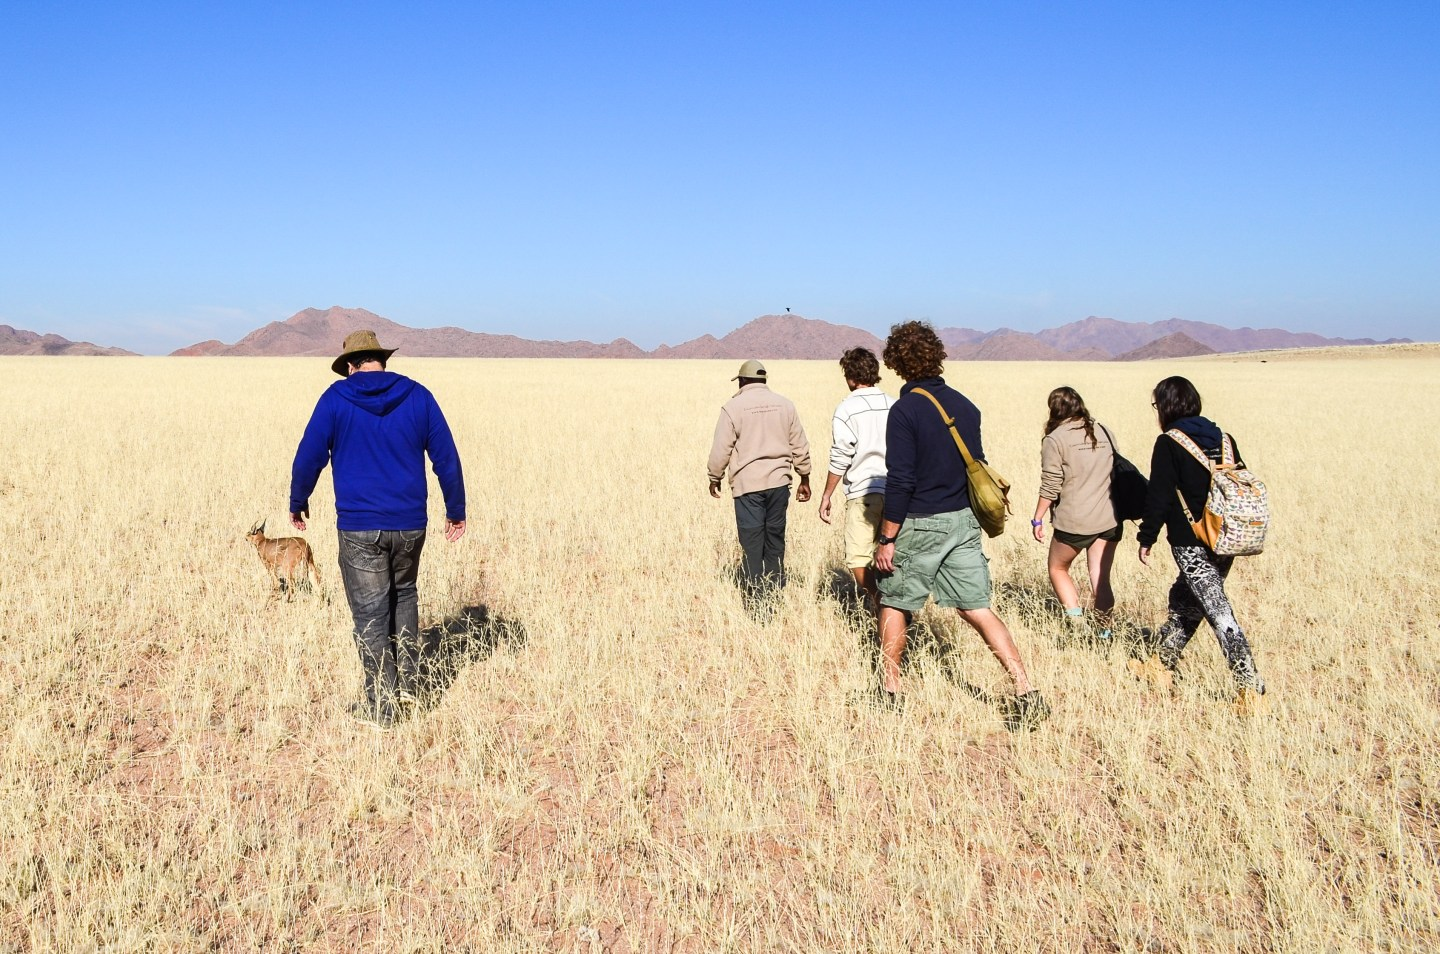 What to consider when planning your voluntourism trip this summer